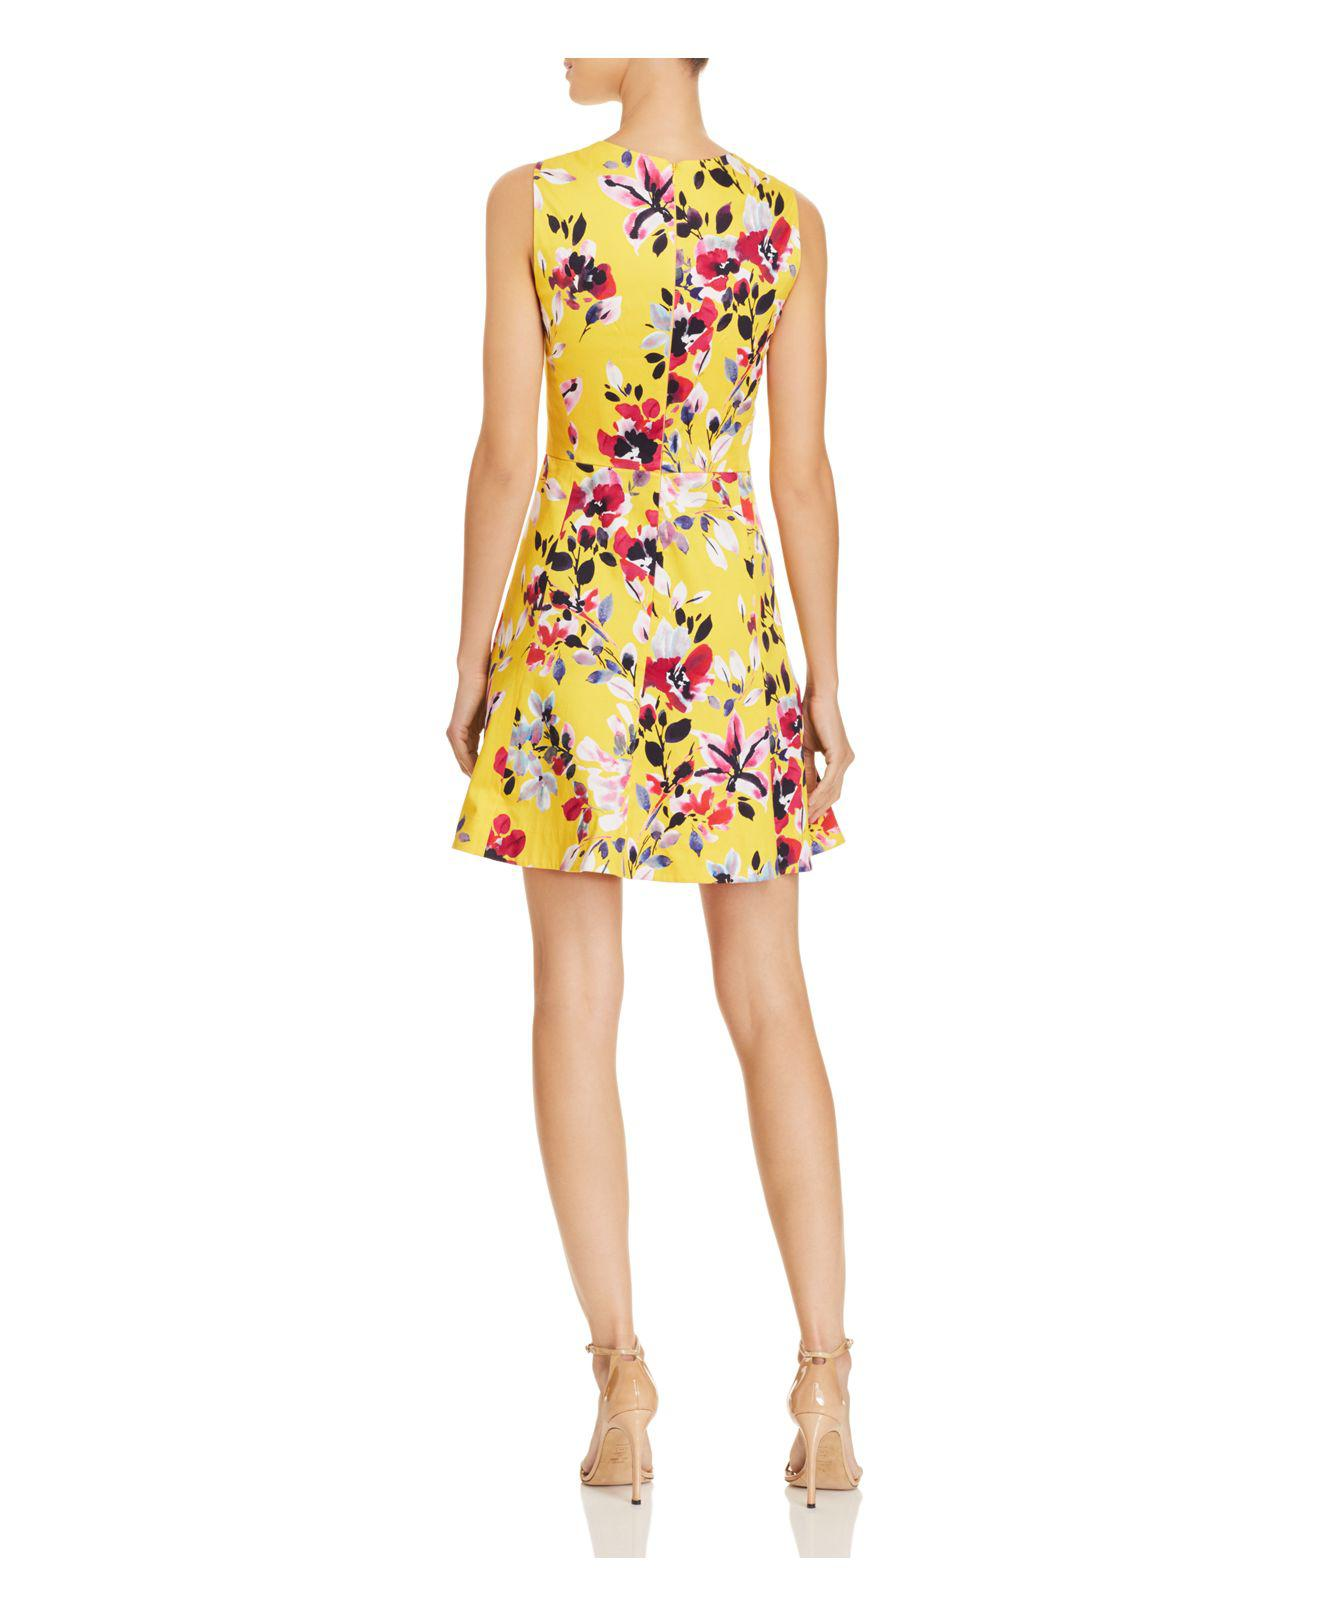 Floral Ruffle Dress - Citrus French Connection eZxD6H